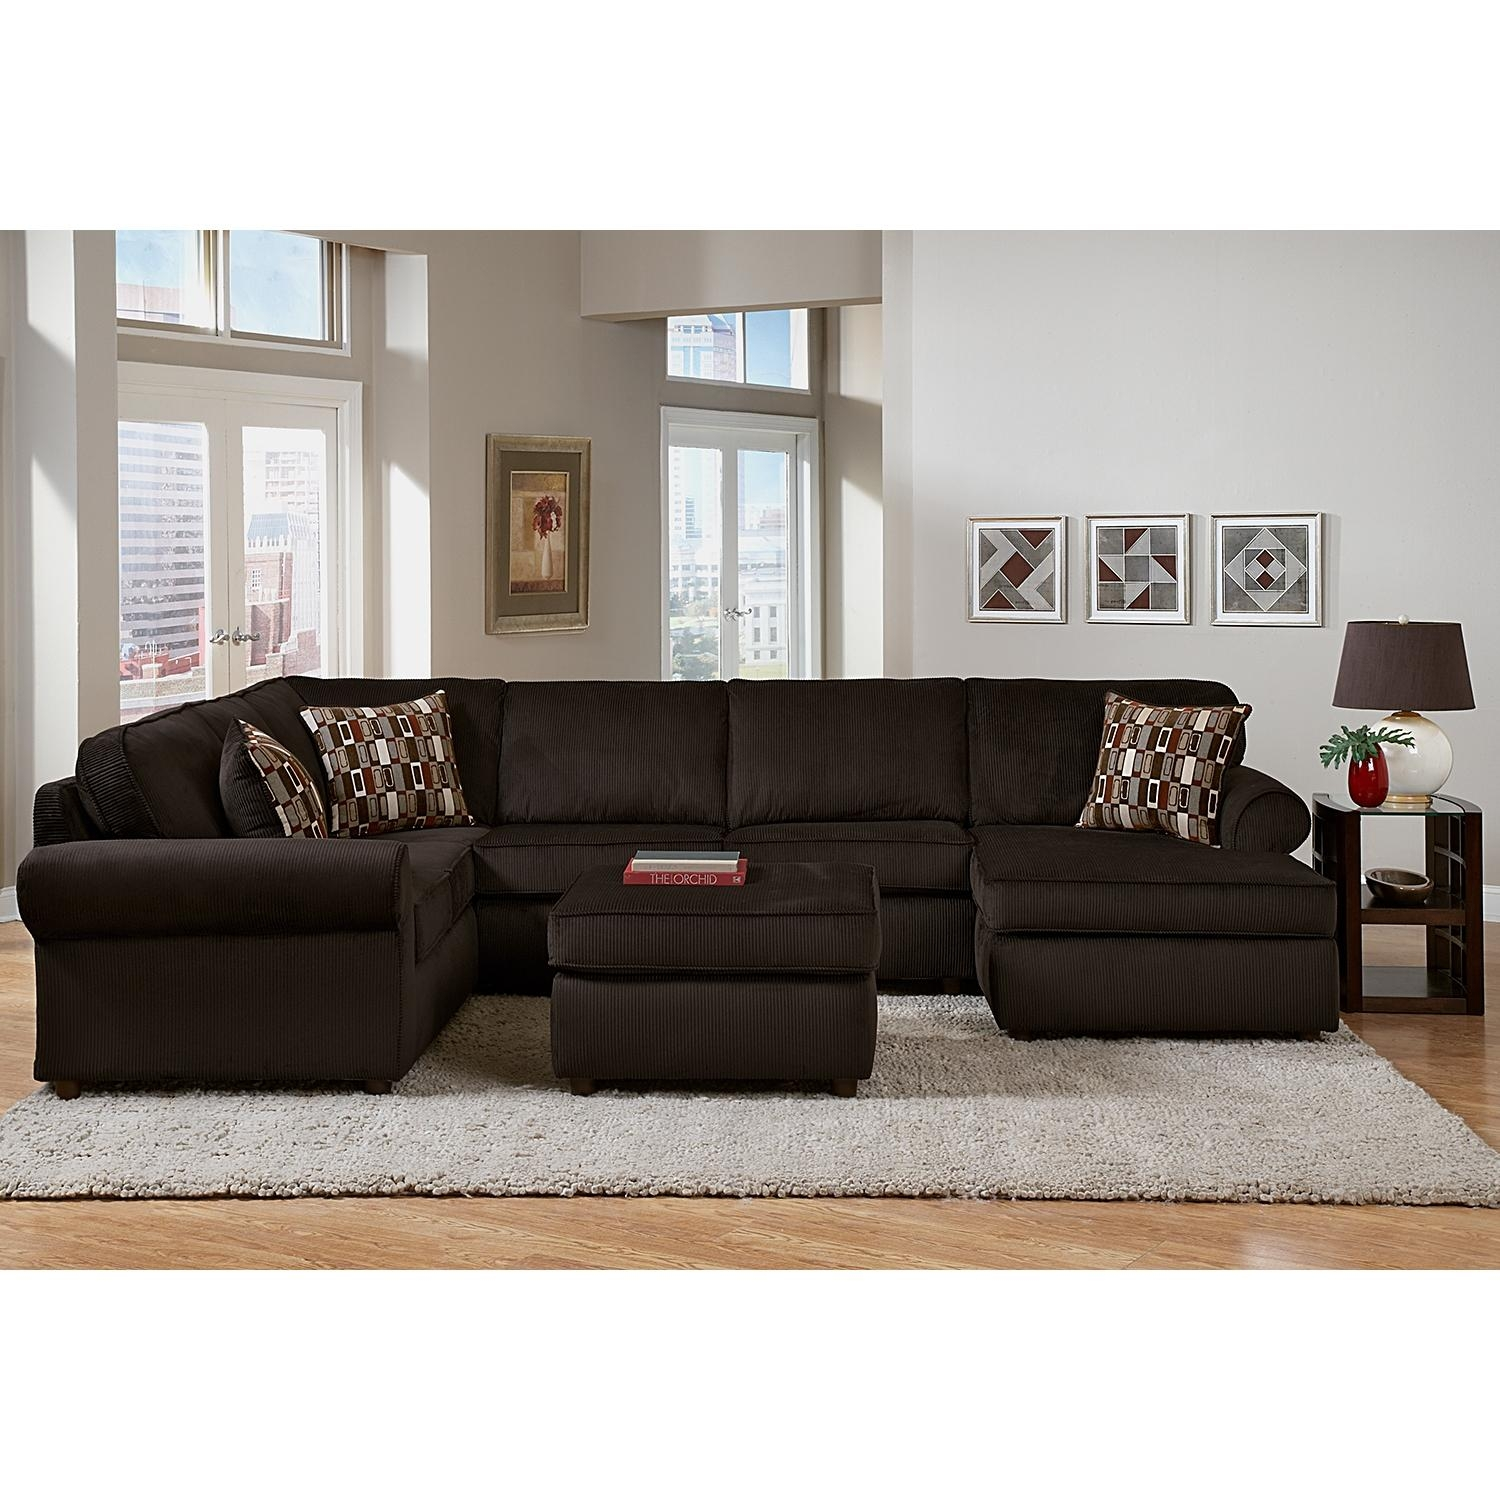 Decor: Artificial Classic Corduroy Sectional Sofa For Unique In Colored Sectionals (Image 8 of 15)